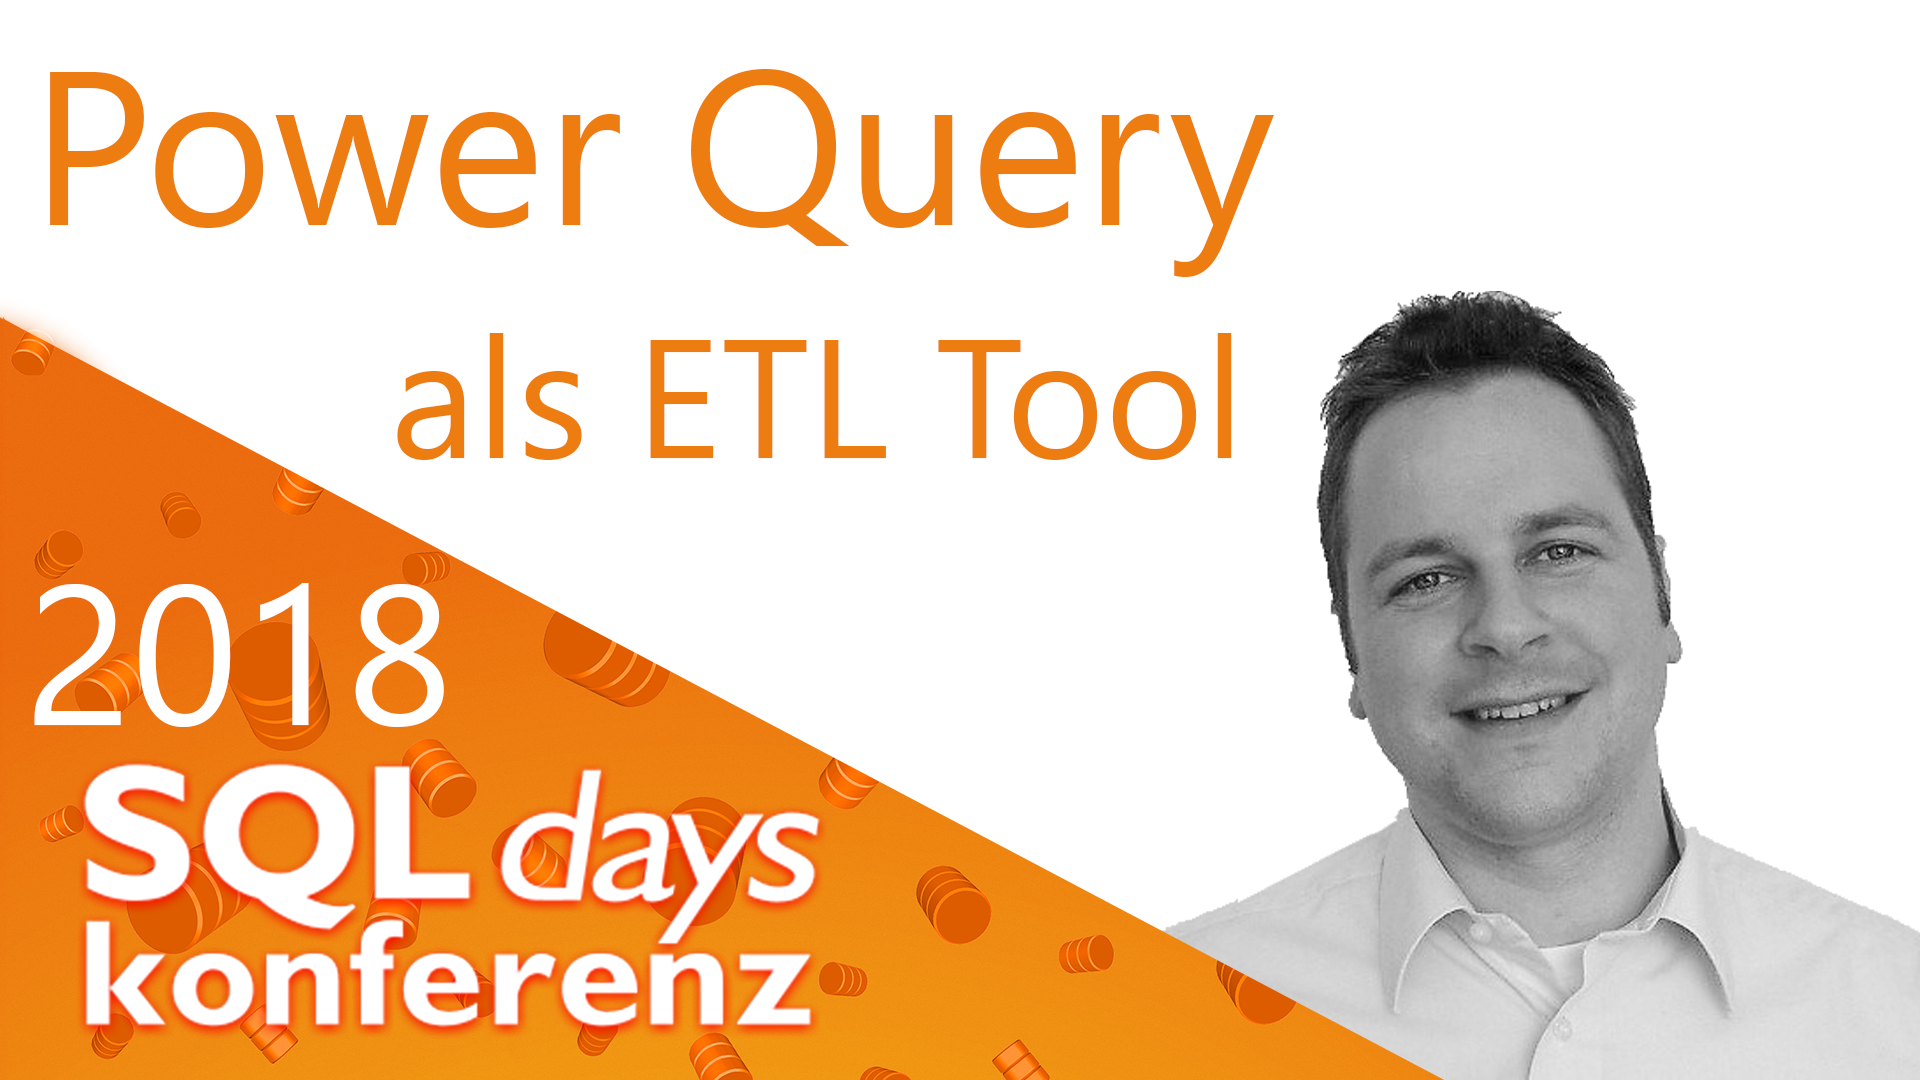 2018/SQLdays/PowerQueryalsETLTool